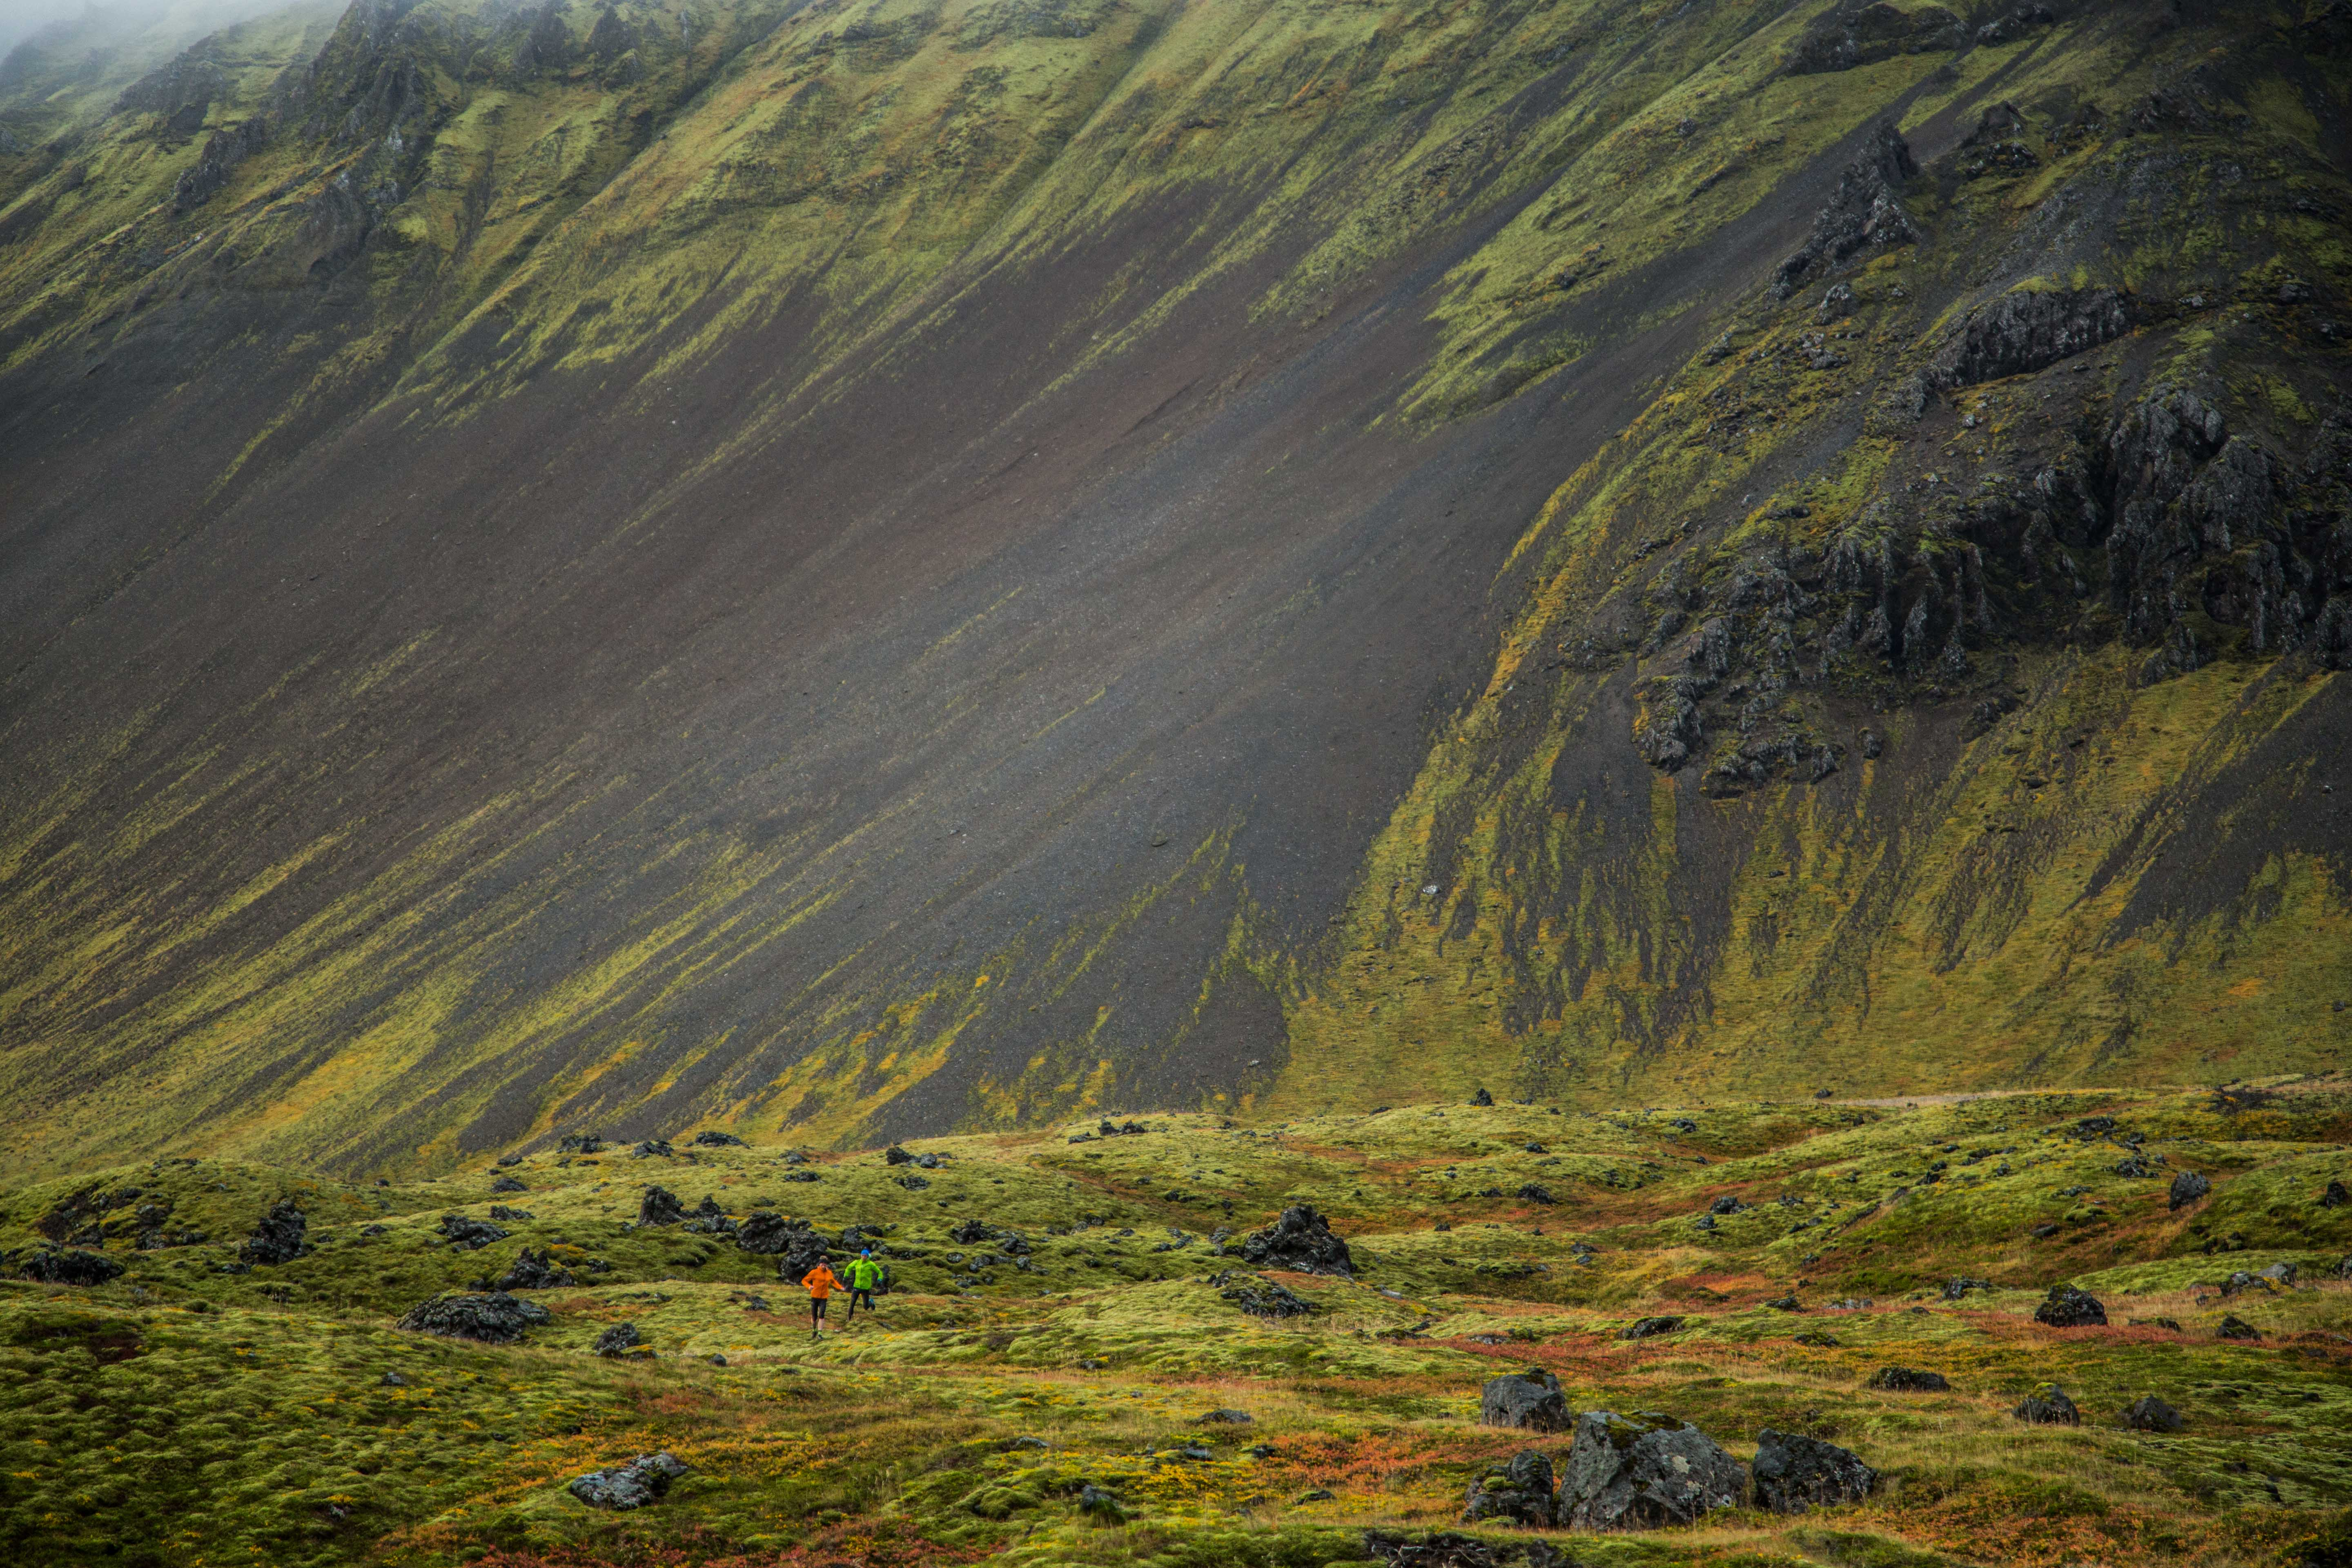 Ricky Lightfoot & Tom Owens | Iceland